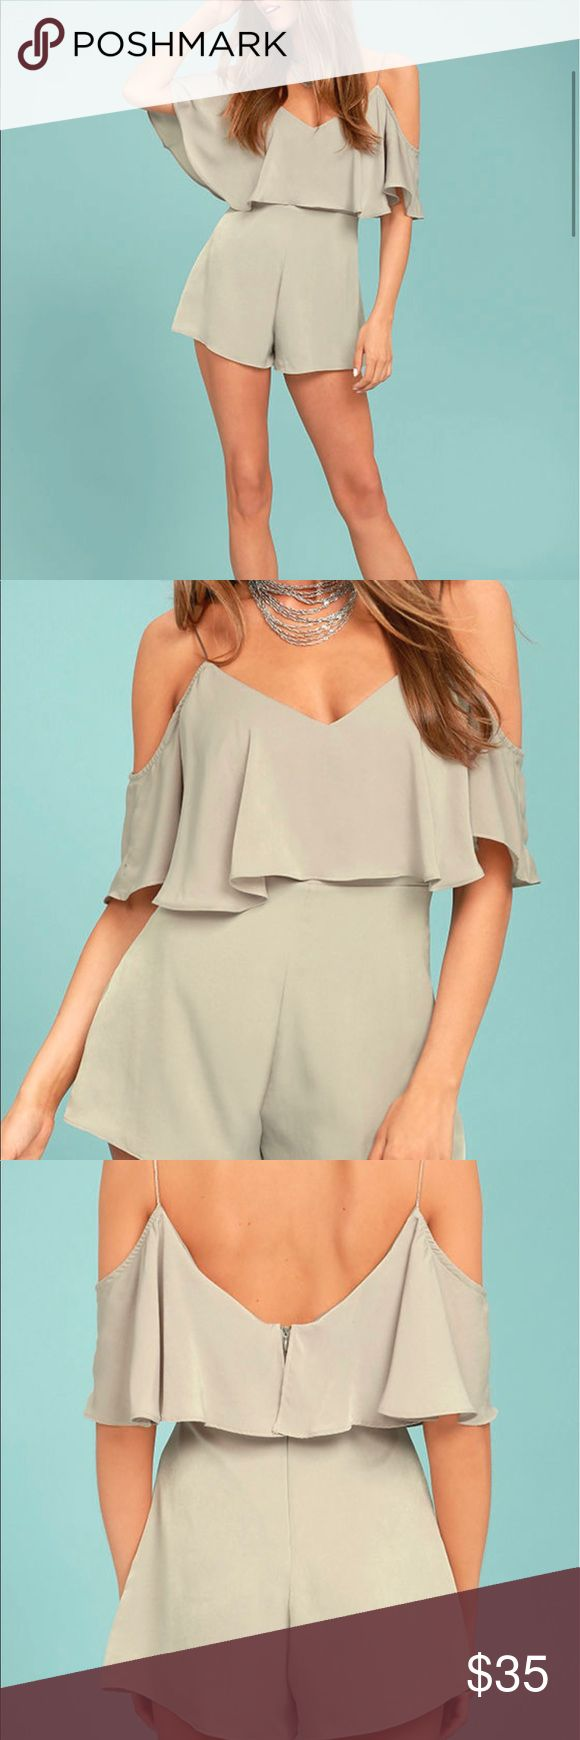 Off-The-Shoulder Trendy Romper Everyday will feel like a party with the Daily Soiree Taupe Off-the-Shoulder Romper! Satiny woven poly falls from skinny straps into a fluttering flounce and short, off-the-shoulder sleeves atop a darted bodice. High, fitted waist tops tailored shorts. Hidden back zipper. Lined. 100% Polyester. Hand Wash Cold. Made with Love in the U.S.A. Lulu's Pants Jumpsuits & Rompers